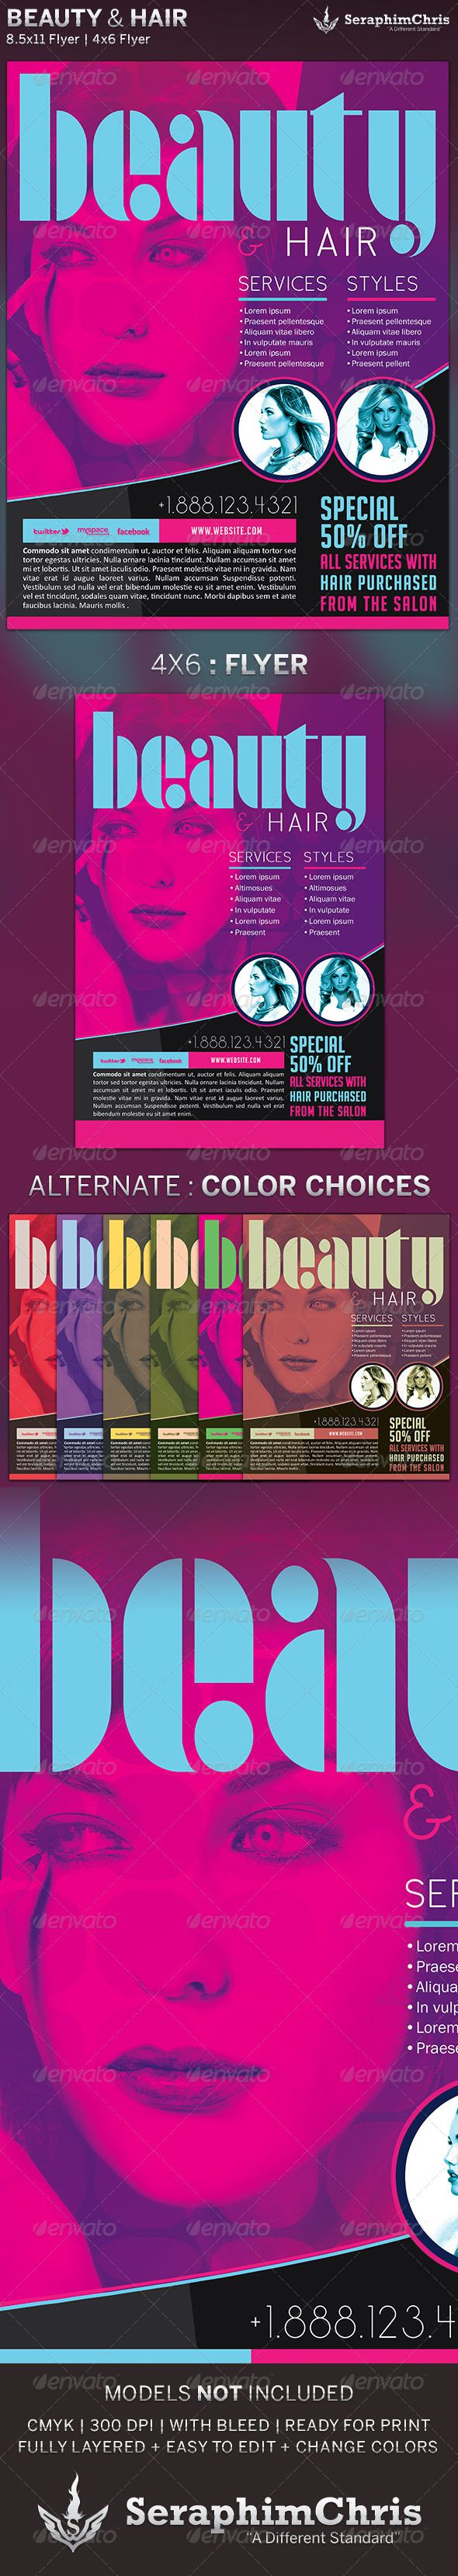 beauty hair s flyer template flyer template places and beauty hair s flyer template 6 00 is customized for hair events salons or